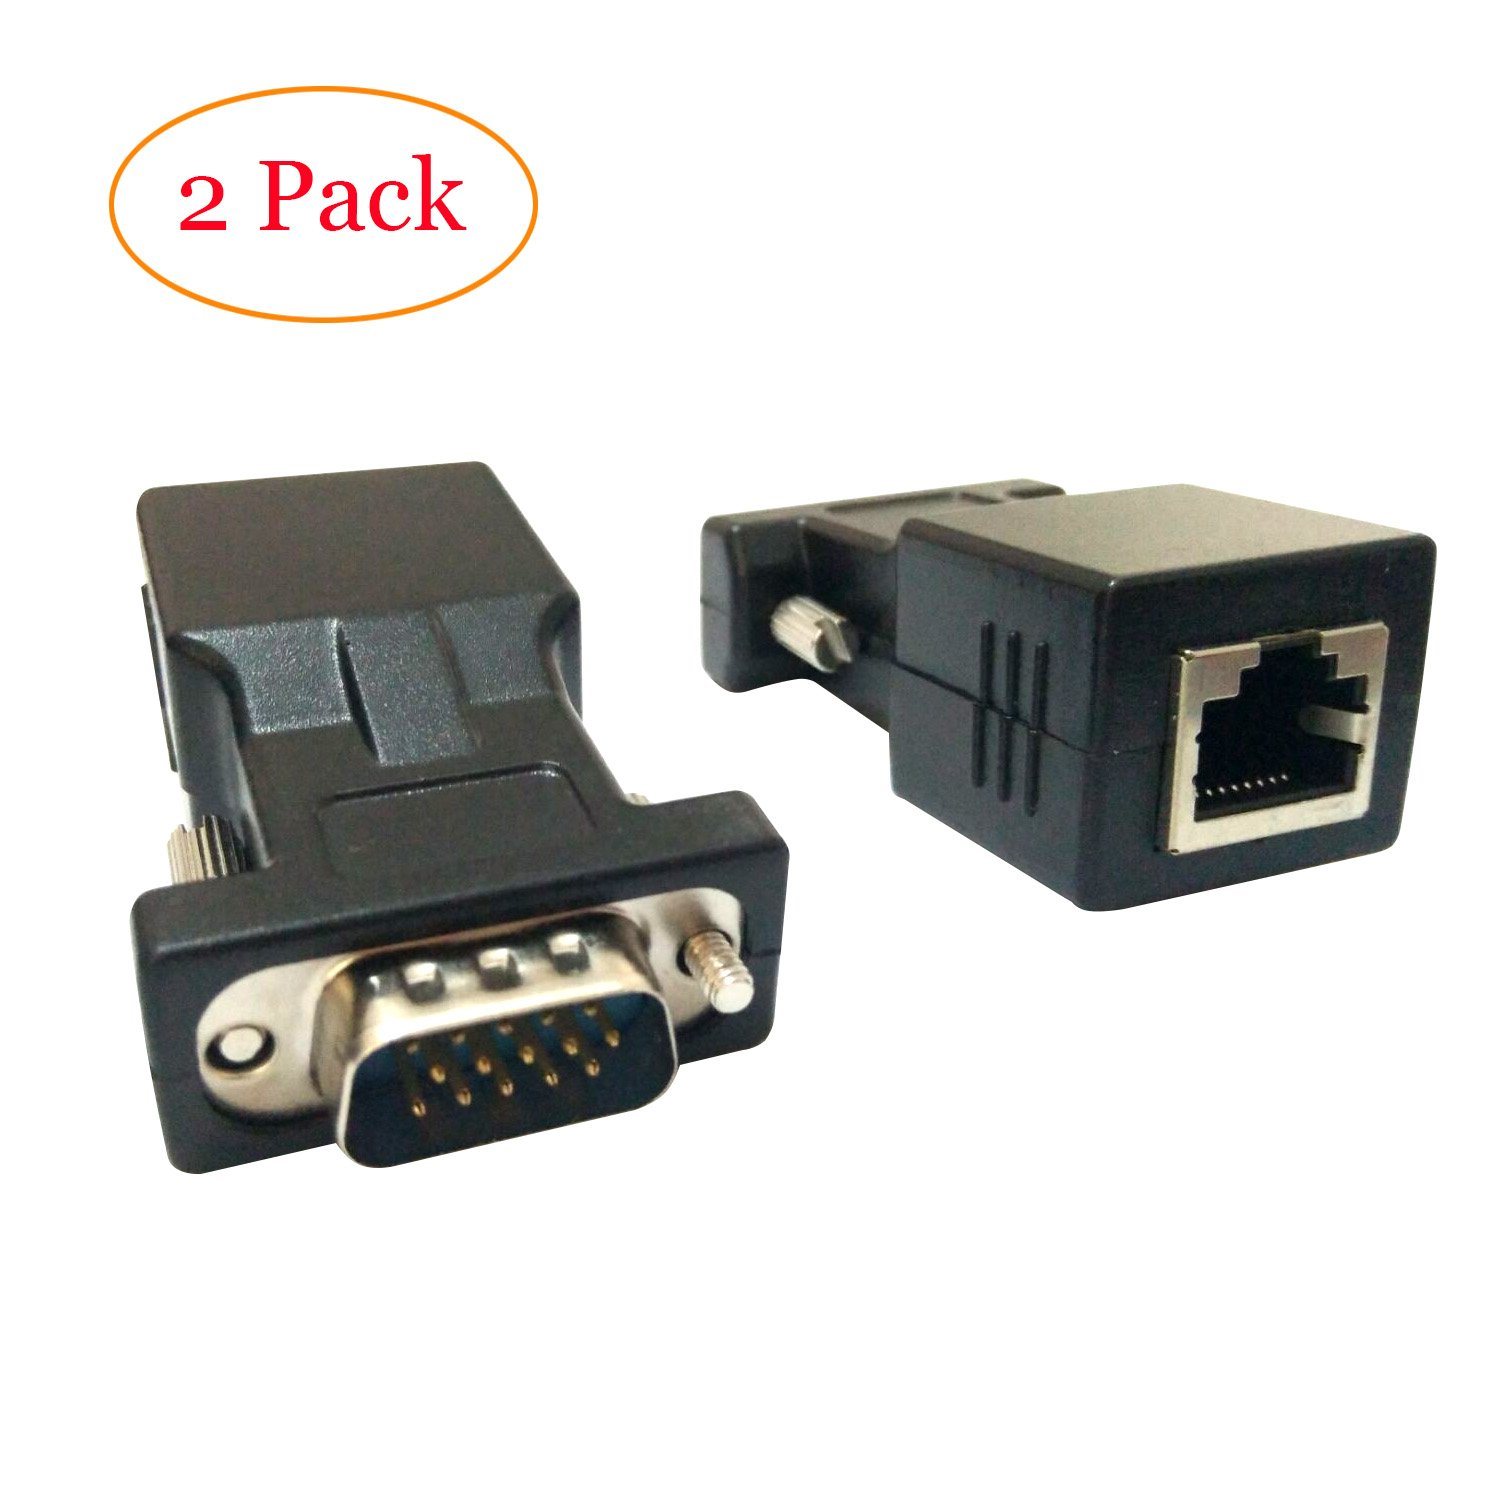 Cheap Vga Cat5 Cable Find Deals On Line At Alibabacom Wiring Connectors Get Quotations Extender Adapter Cat6 Rj45tongbao Tob33 15 Pin Male To